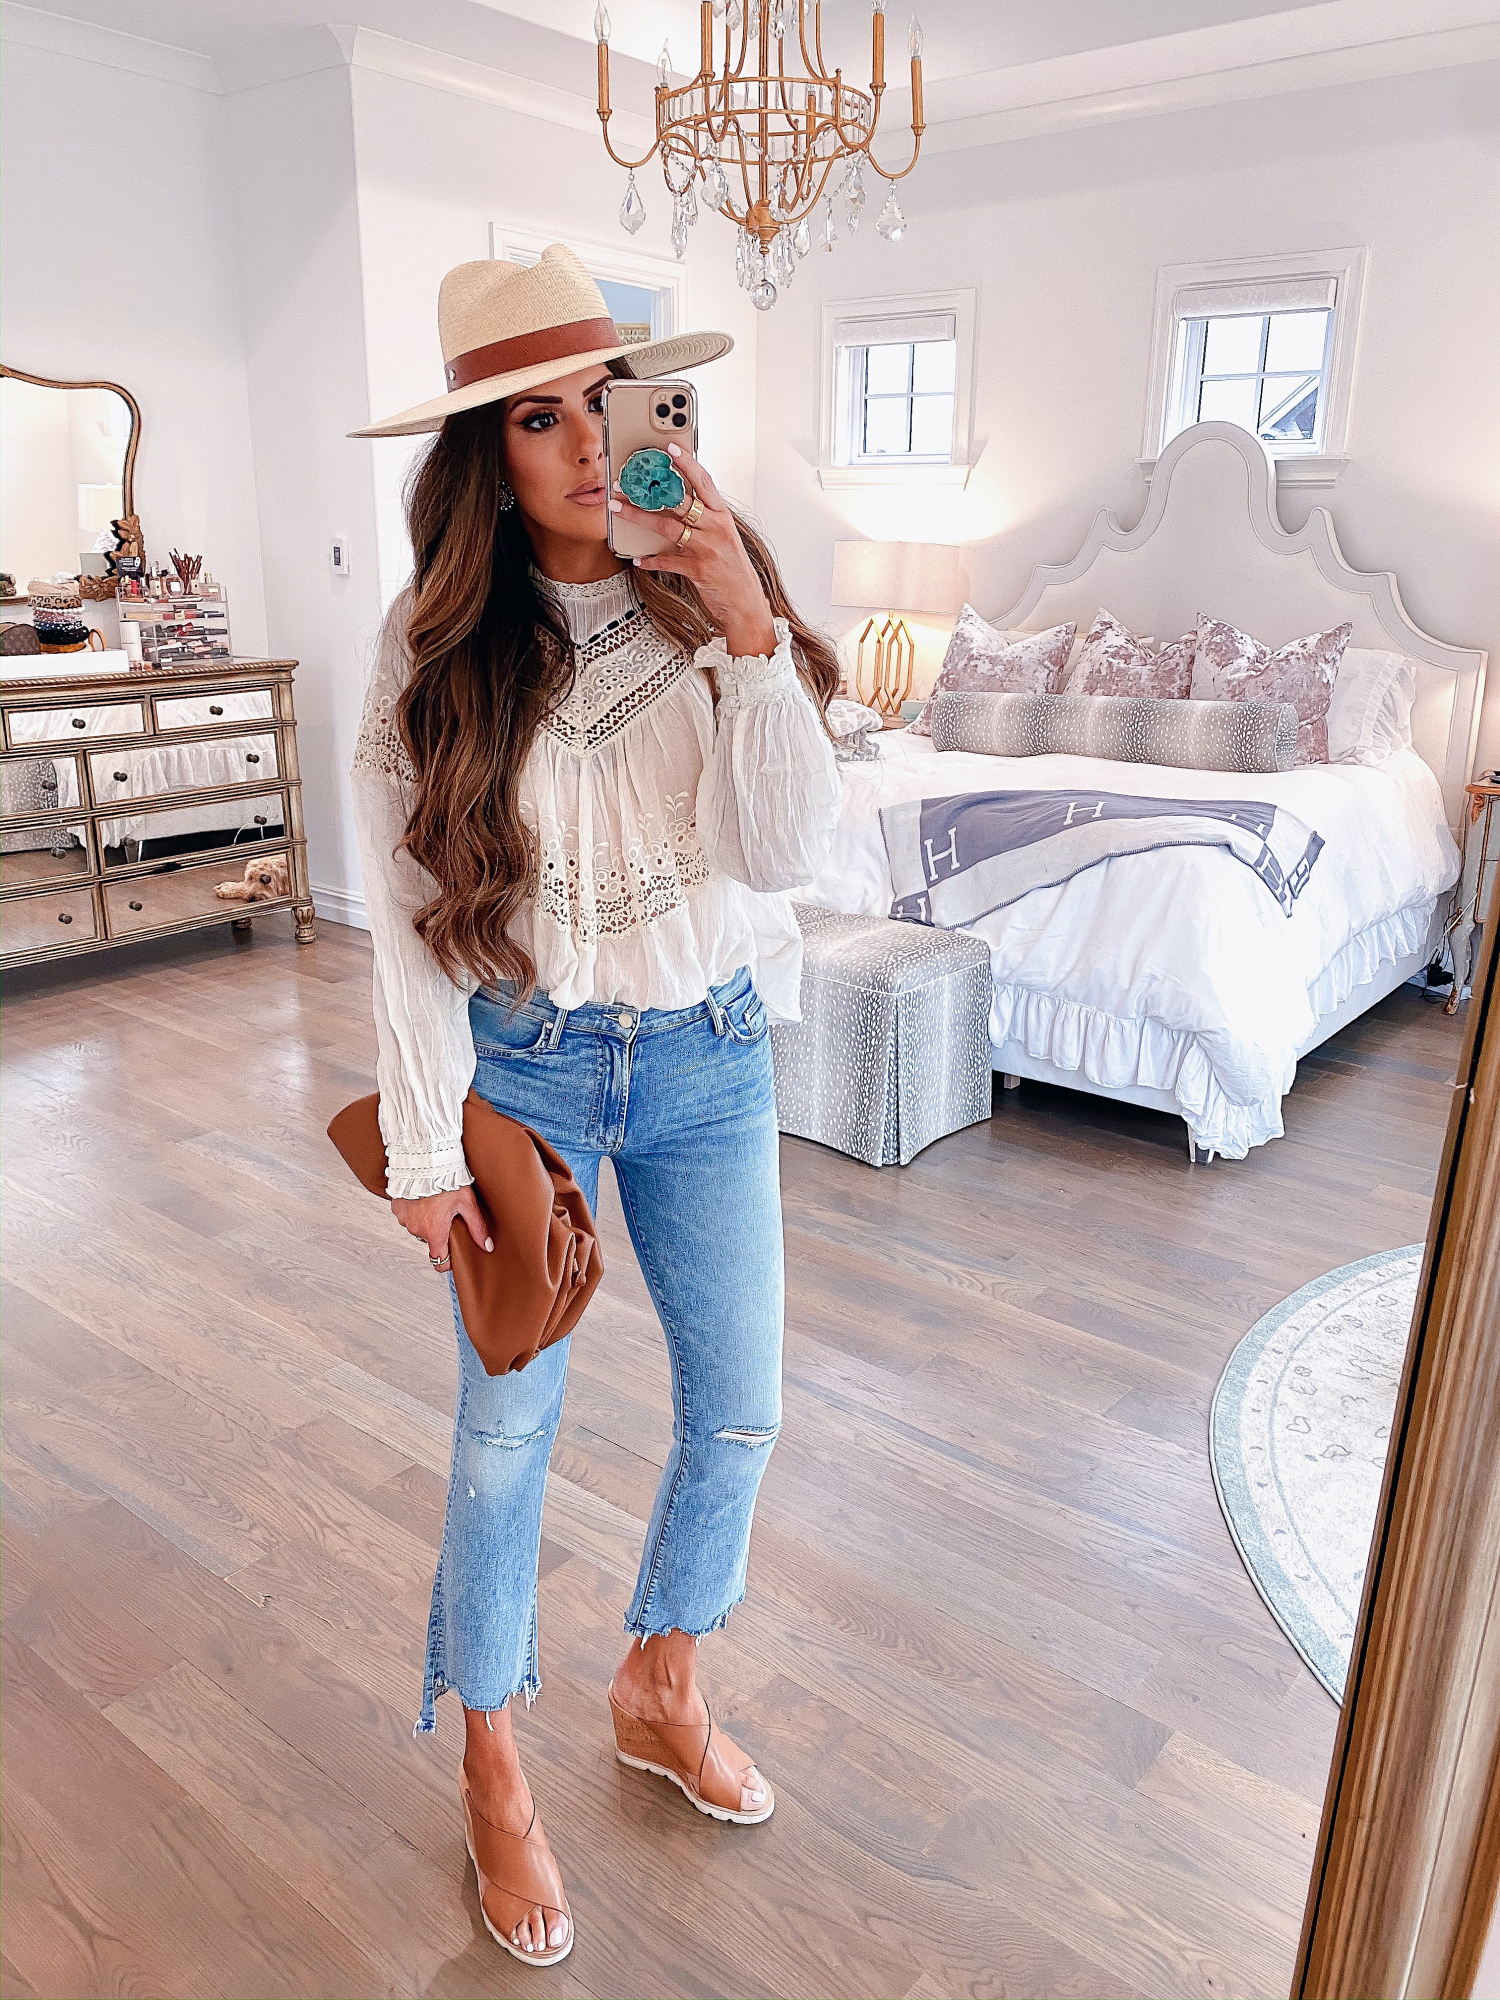 Instagram Recap by popular US lifestyle blog, The Sweetest Thing: image of Emily Gemma wearing a Free People top, Nordstrom Mother The Insider Ripped Chew Hem Crop Bootcut Jeans, PORT BUTTON STUD EARRINGS, Nordstrom Wide Brim Panama Hat RAG & BONE, Nordstrom Pillow Talk Lip Cheat Lip Liner CHARLOTTE TILBURY, Nordstrom Hot Lips Lipstick CHARLOTTE TILBURY, Nordstrom Gloss Luxe Moisturizing Lipgloss TOM FORD, Steve Madden FLORETTA COGNAC LEATHER wedges, and holding a Net-A-Porter BOTTEGA VENETA The Pouch small gathered leather clutch.